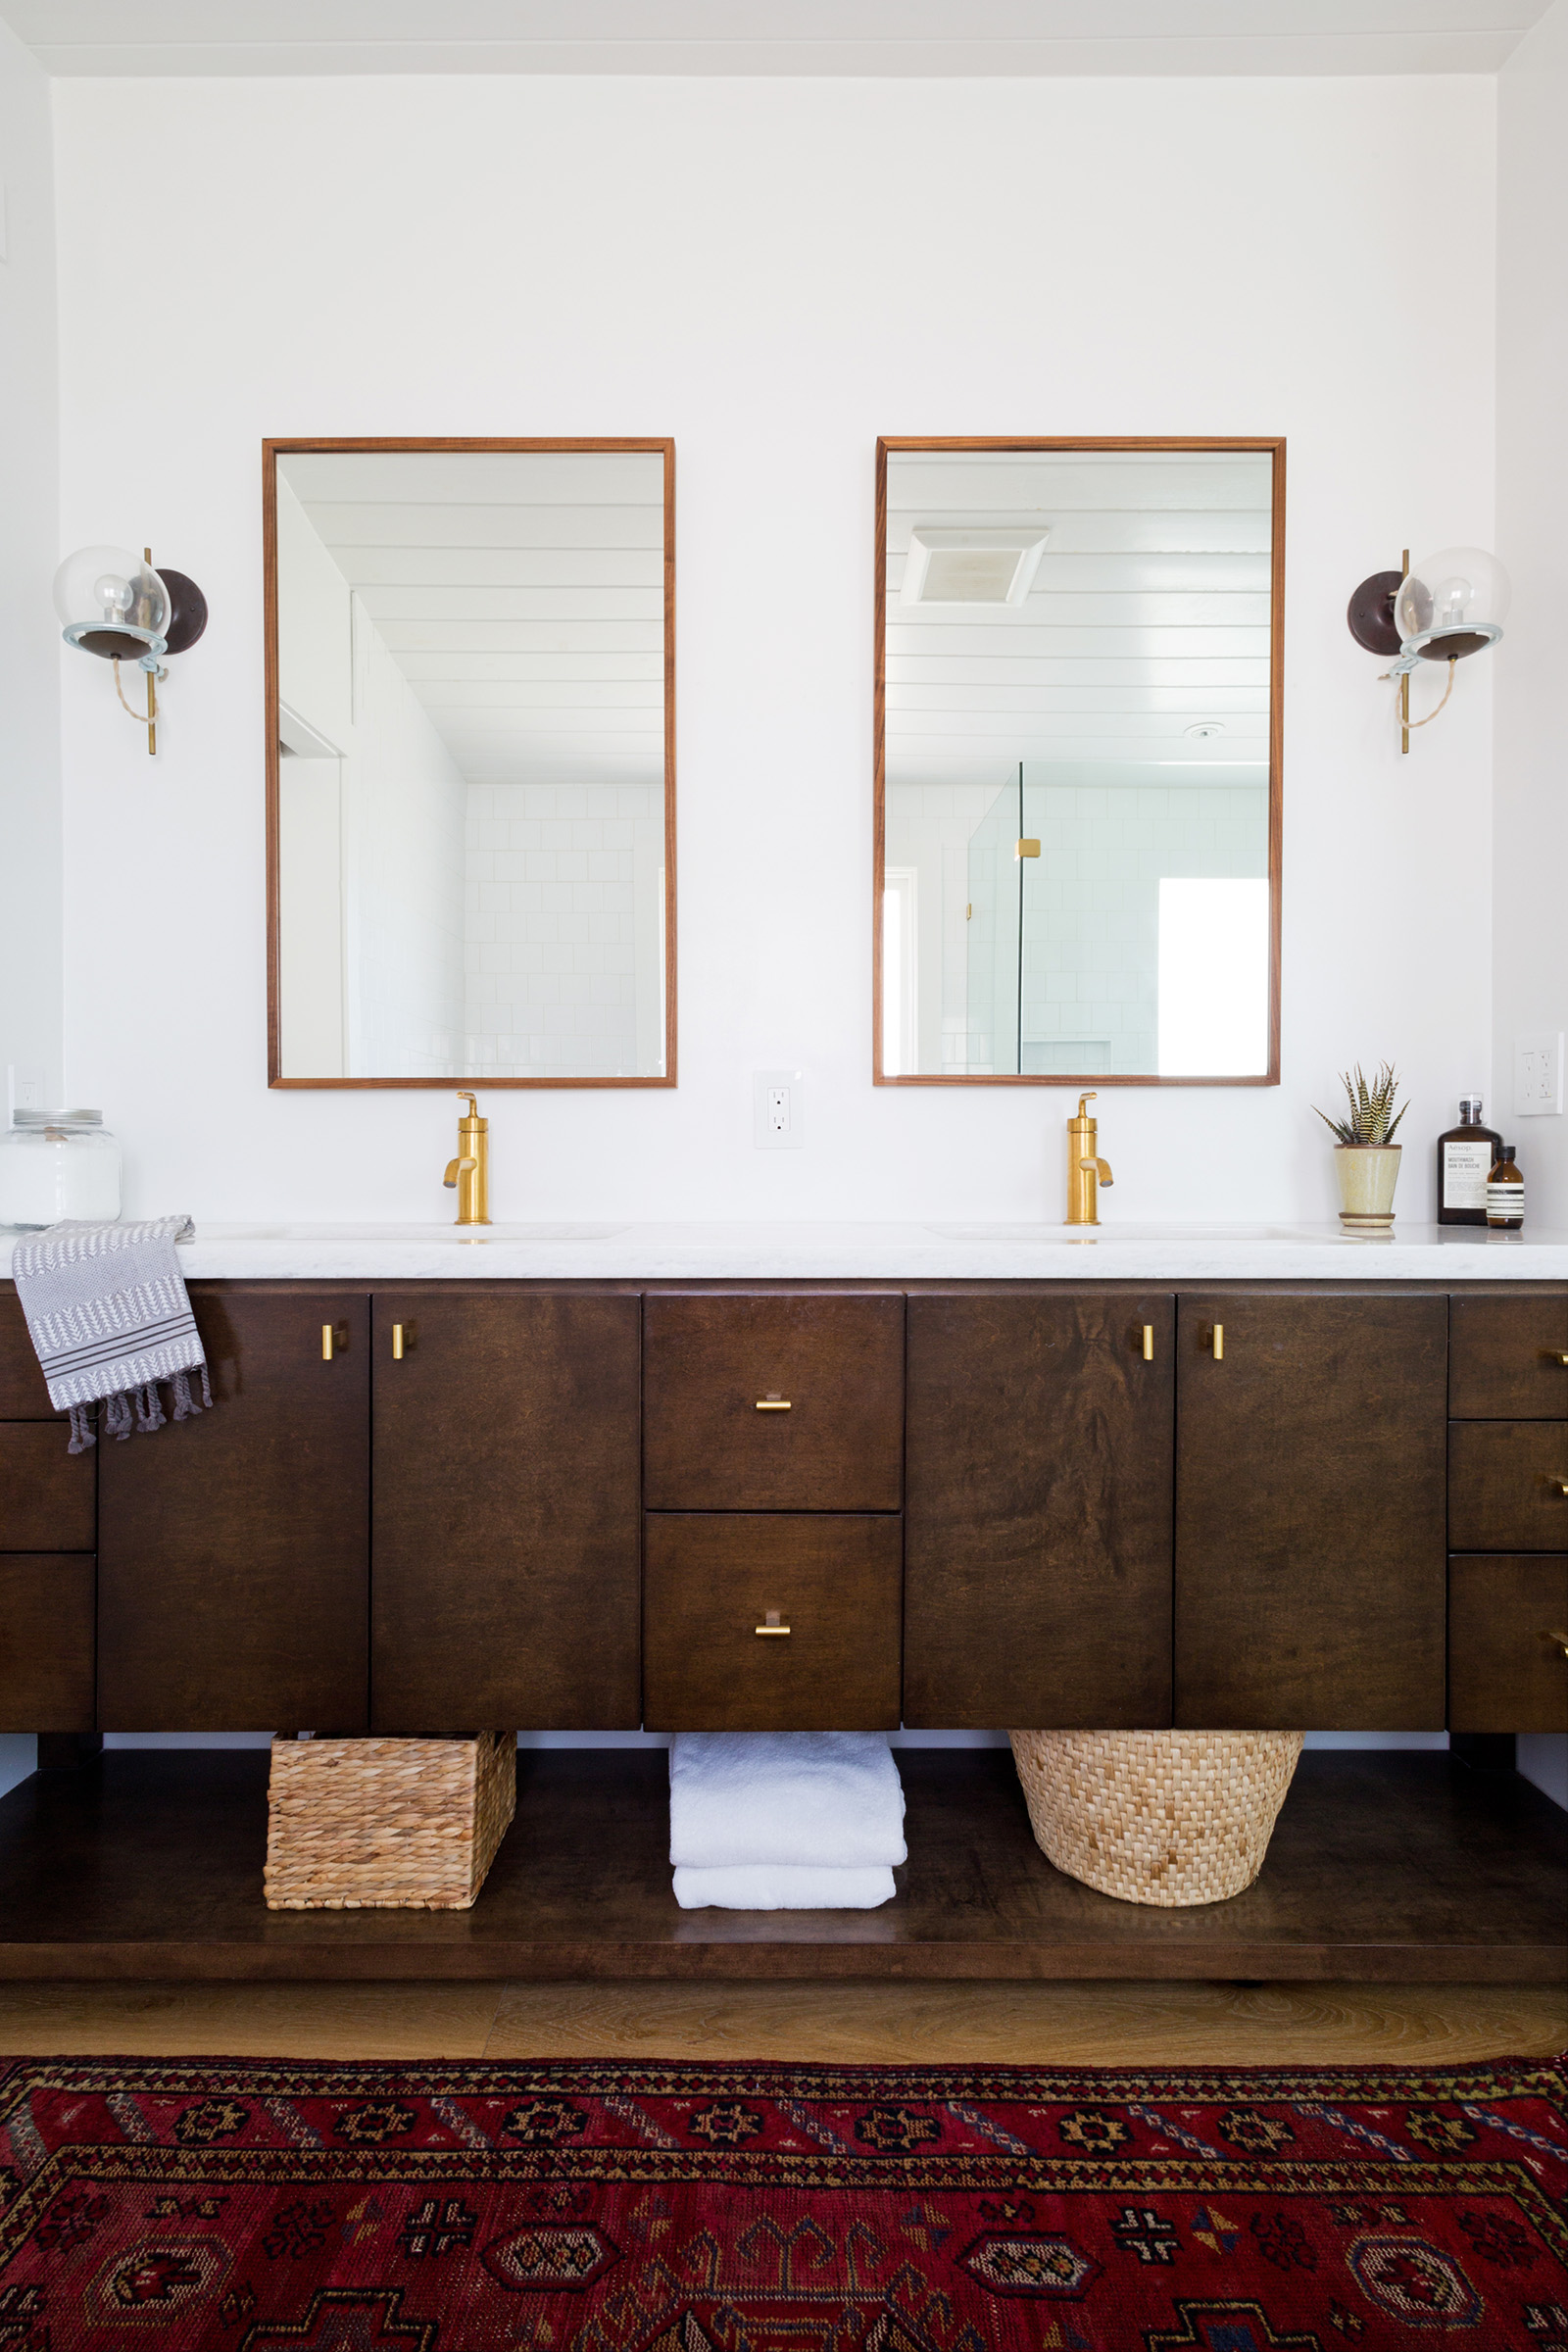 Custom mid-century modern wood bathroom vanity designed by Carly Waters Style